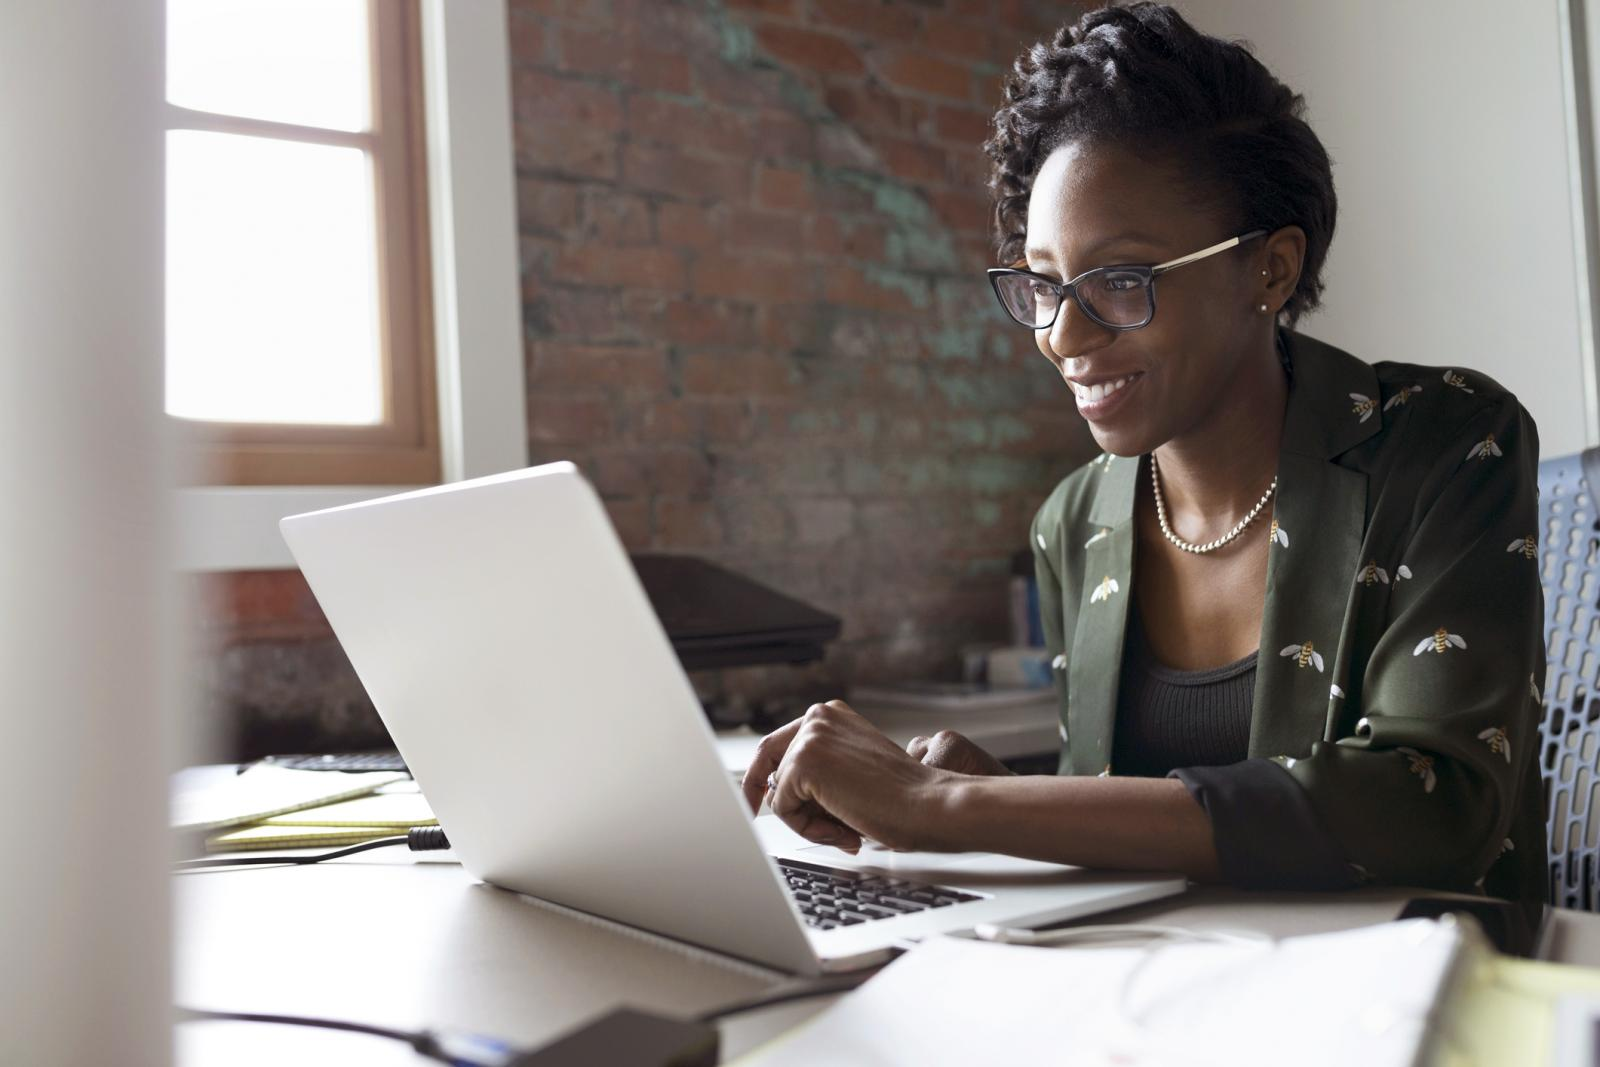 Smiling creative businesswoman working at laptop